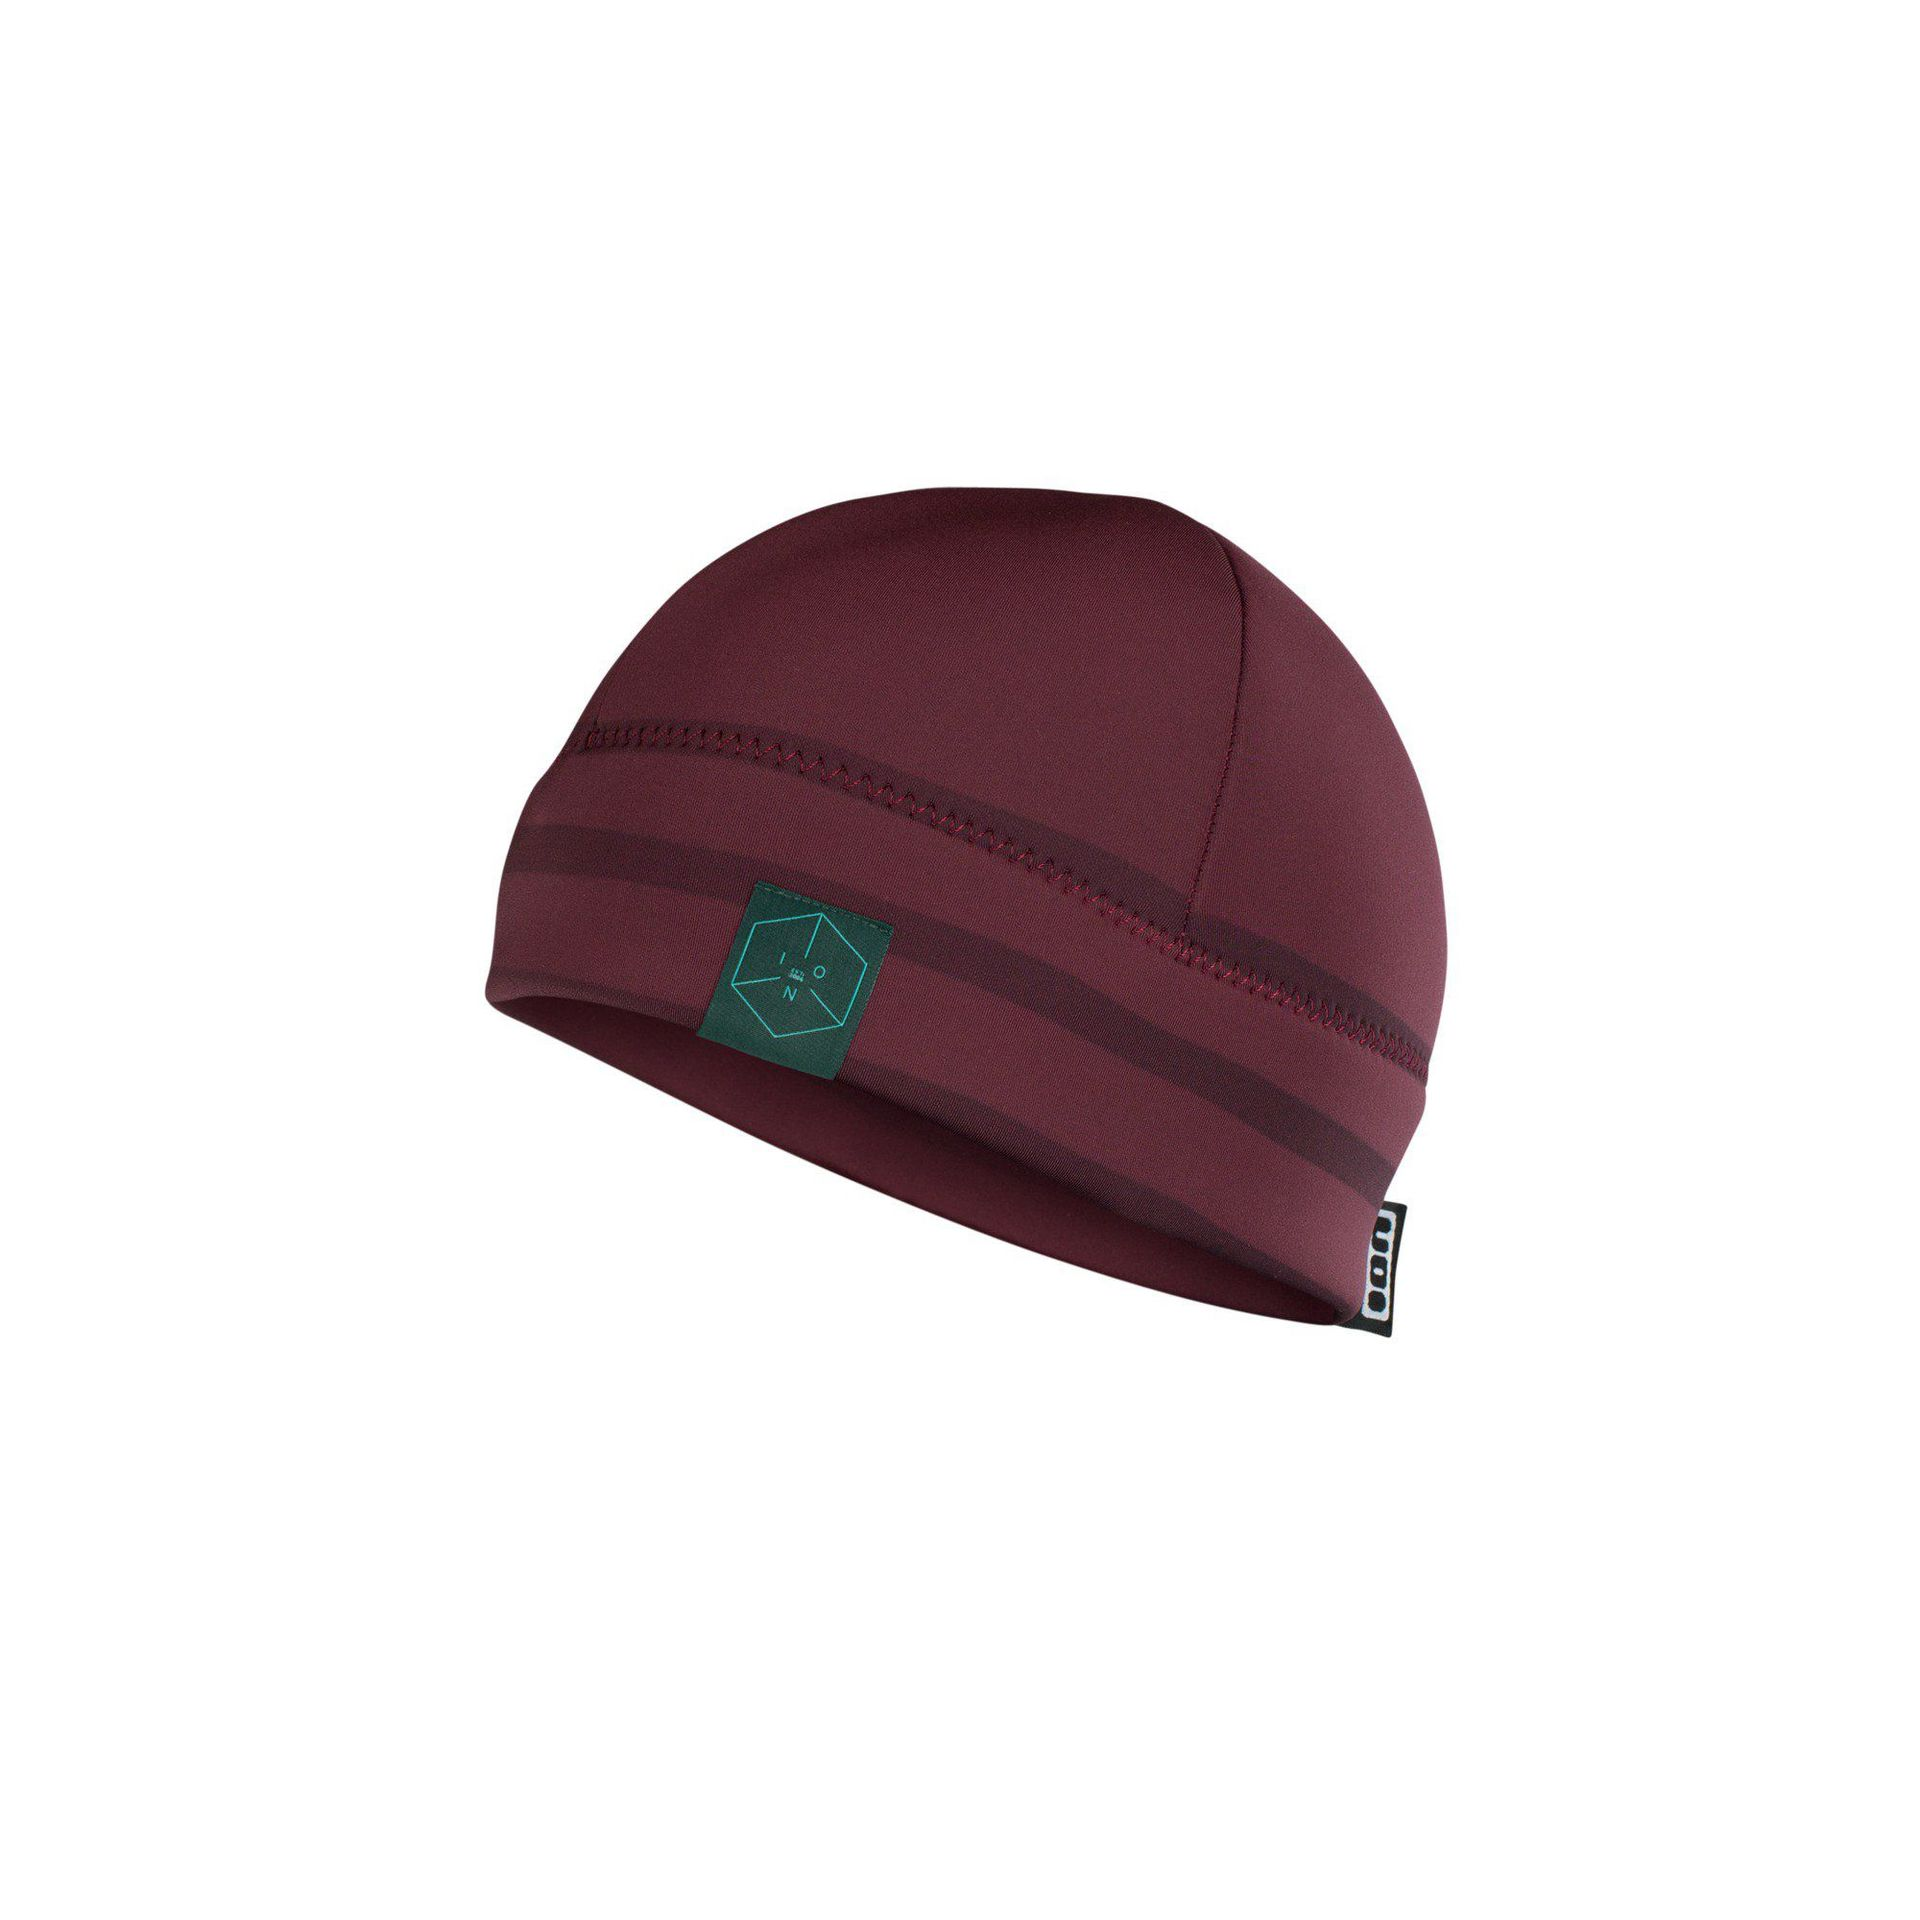 CZAPKA NEOPRENOWA ION NEO LOGO 48800-4183 WINE RED